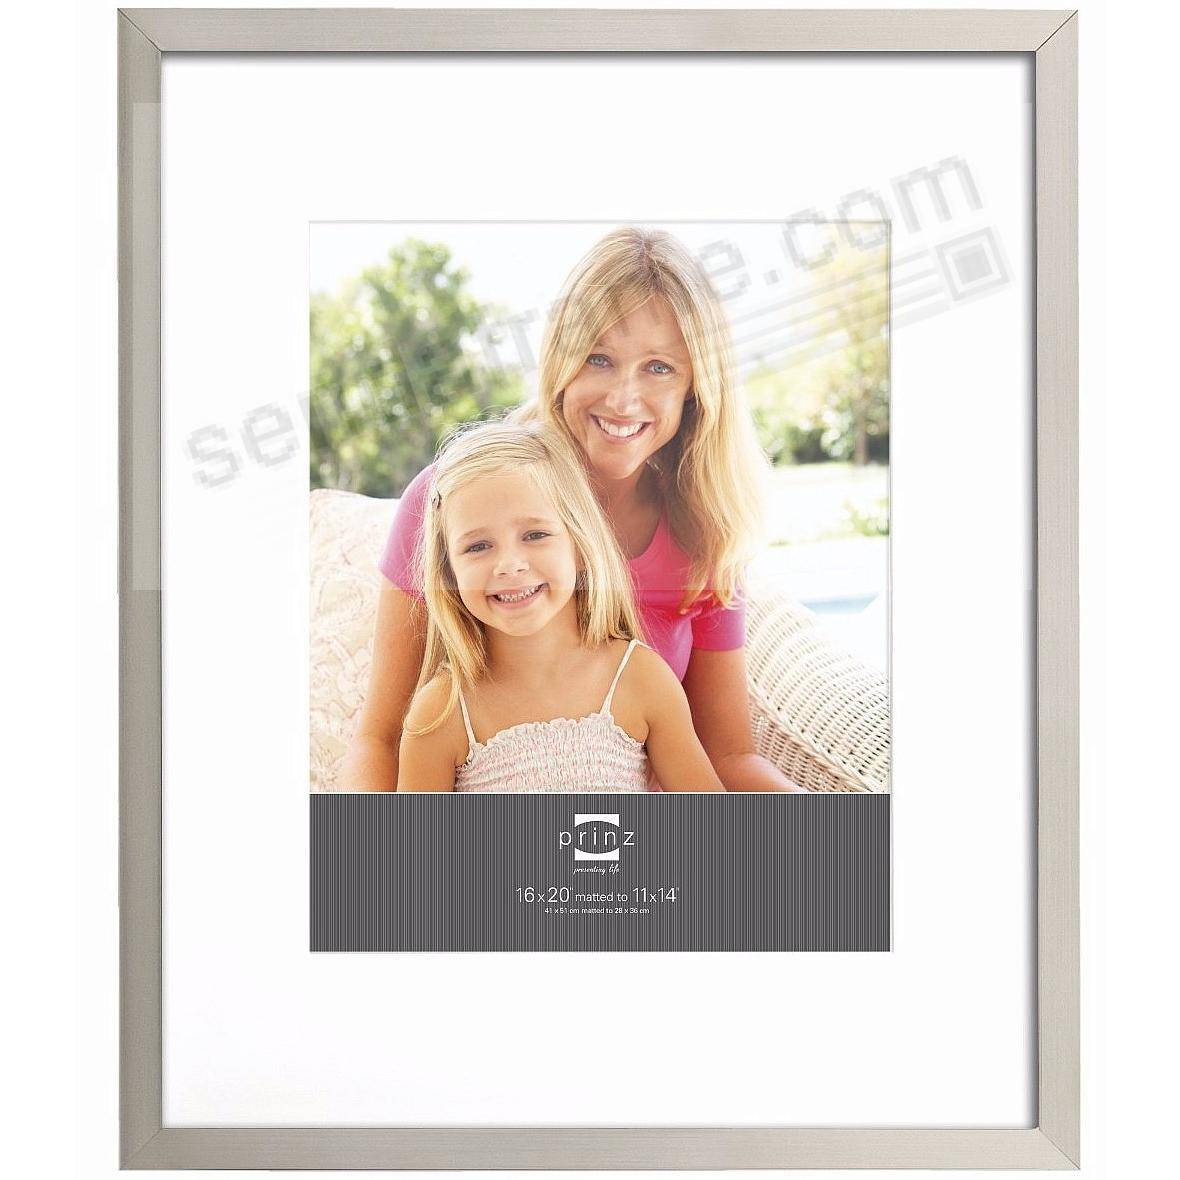 GALLERY EXPRESSIONS Nickel 16x20/11x14 frame w/white mat by Prinz ...